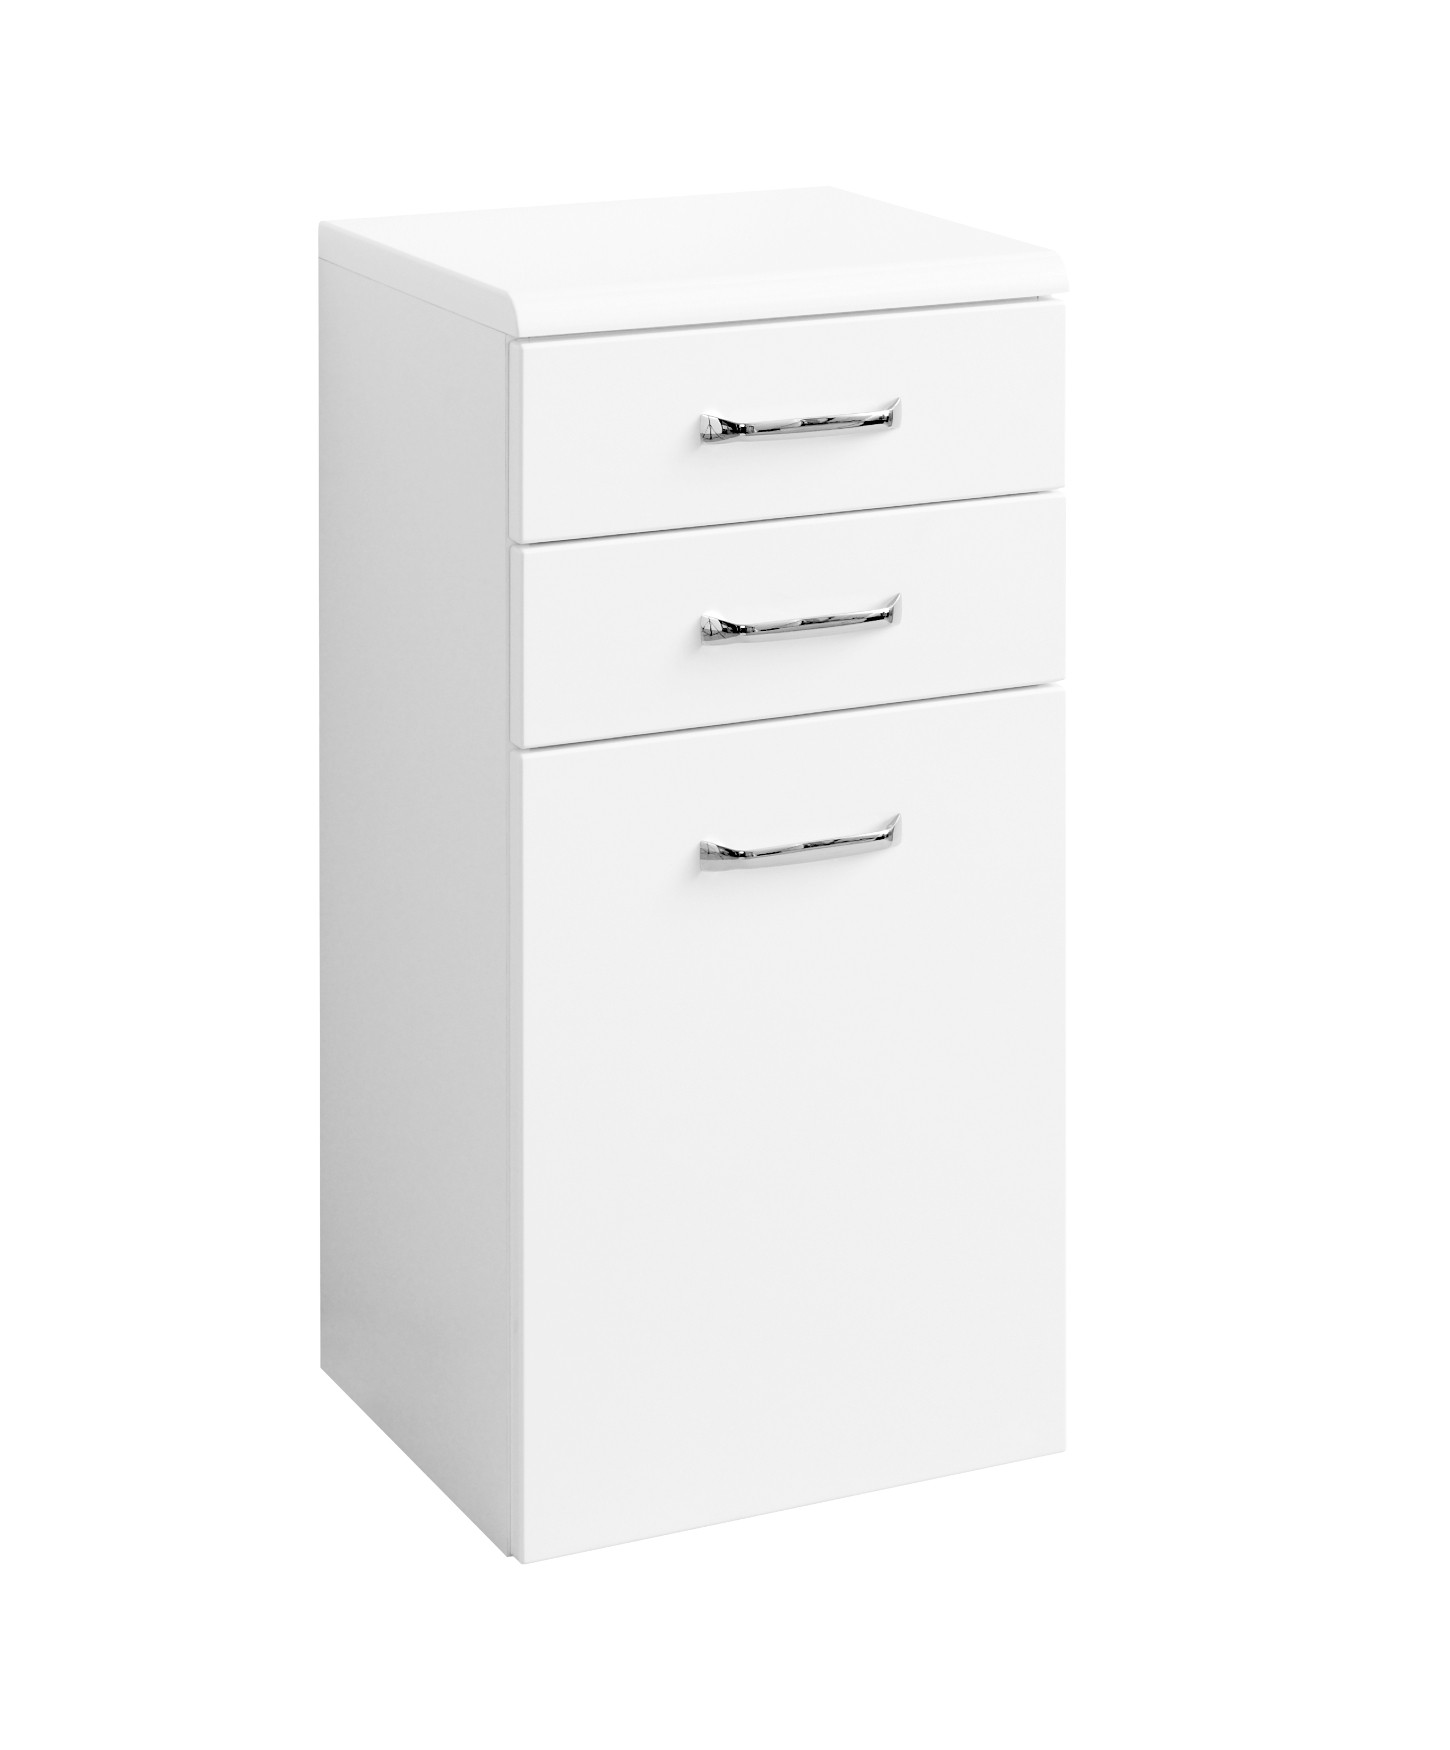 badezimmer bad unterschrank fontana badm bel badschrank 40 cm weiss ebay. Black Bedroom Furniture Sets. Home Design Ideas